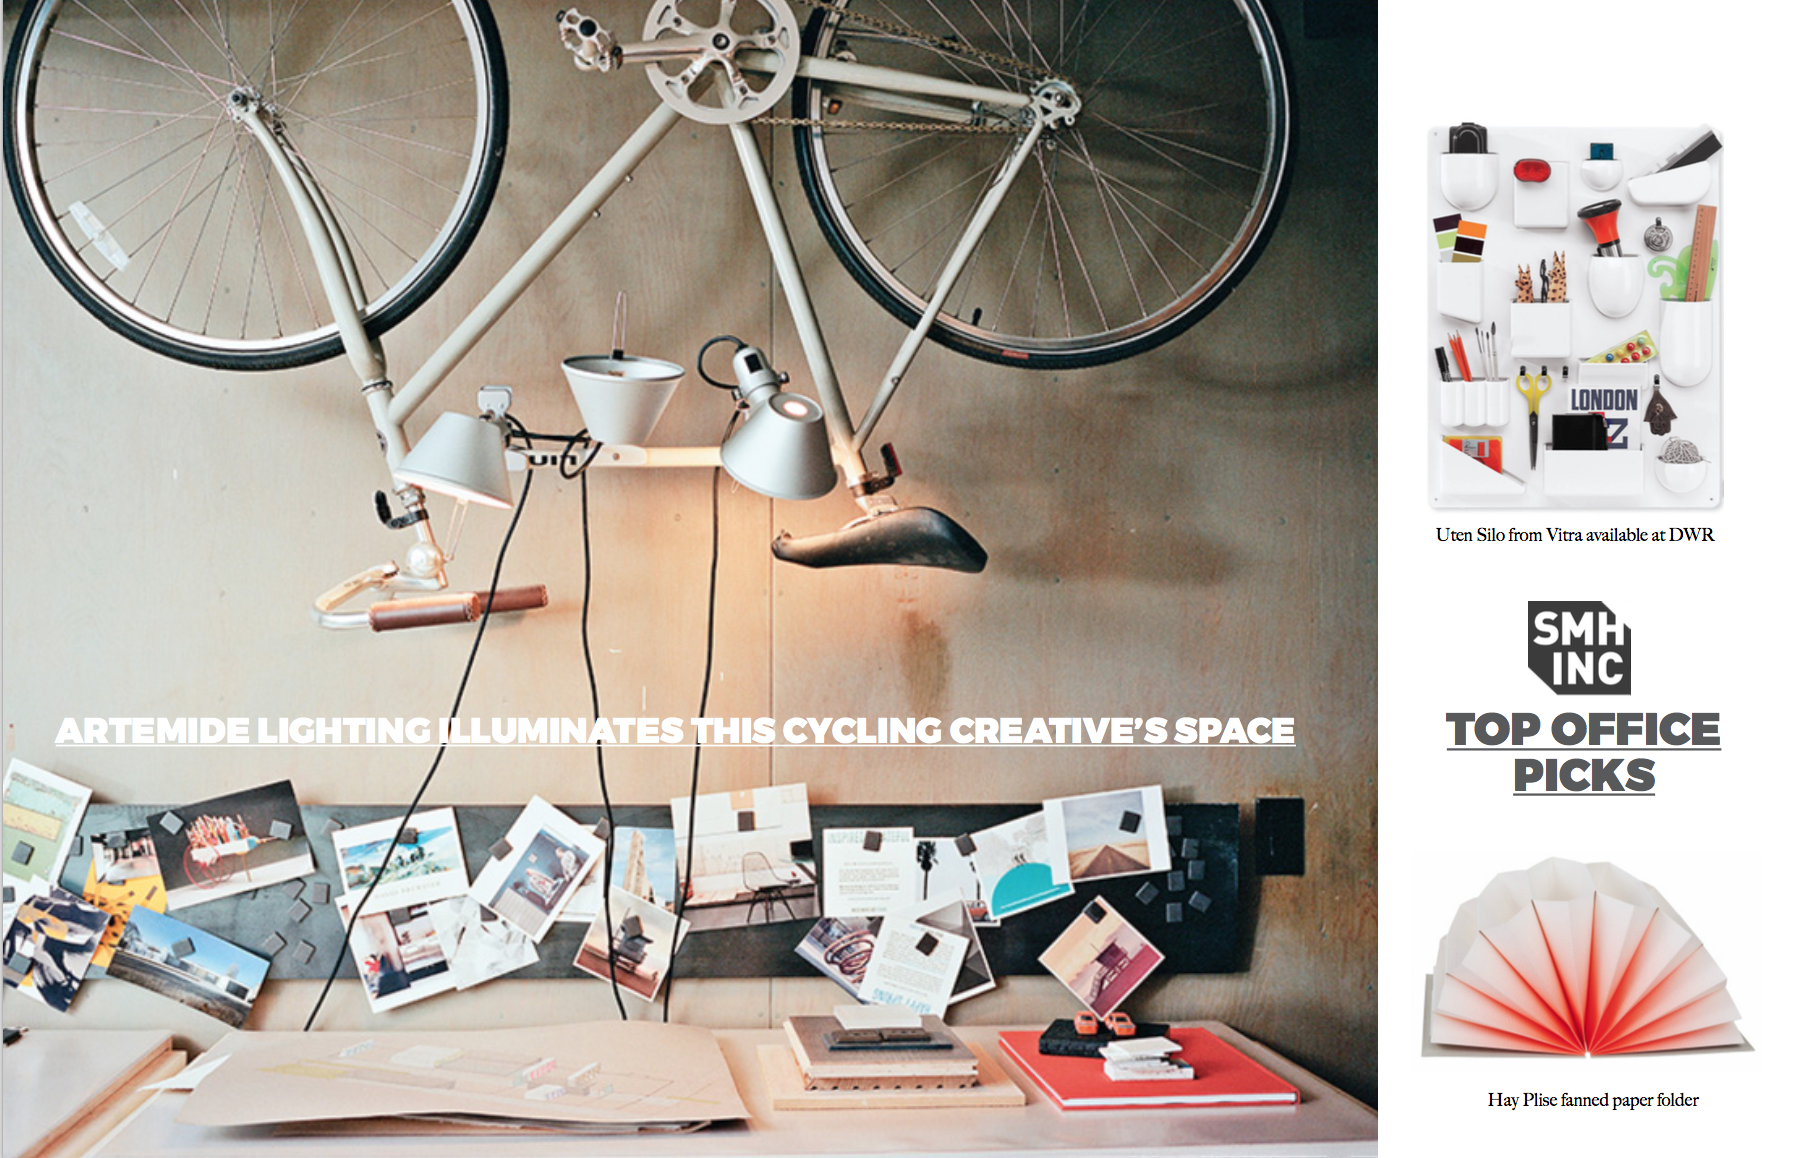 Left: Architect Brue Norelius transformed one of the bedrooms into a studio. A custom desk has a magnetic board and bike as wall art above. Right: SMH, Inc's top picks for office accessories. Images courtesy of  DWR  and  Hay . The main image appears on  www.dwell.com